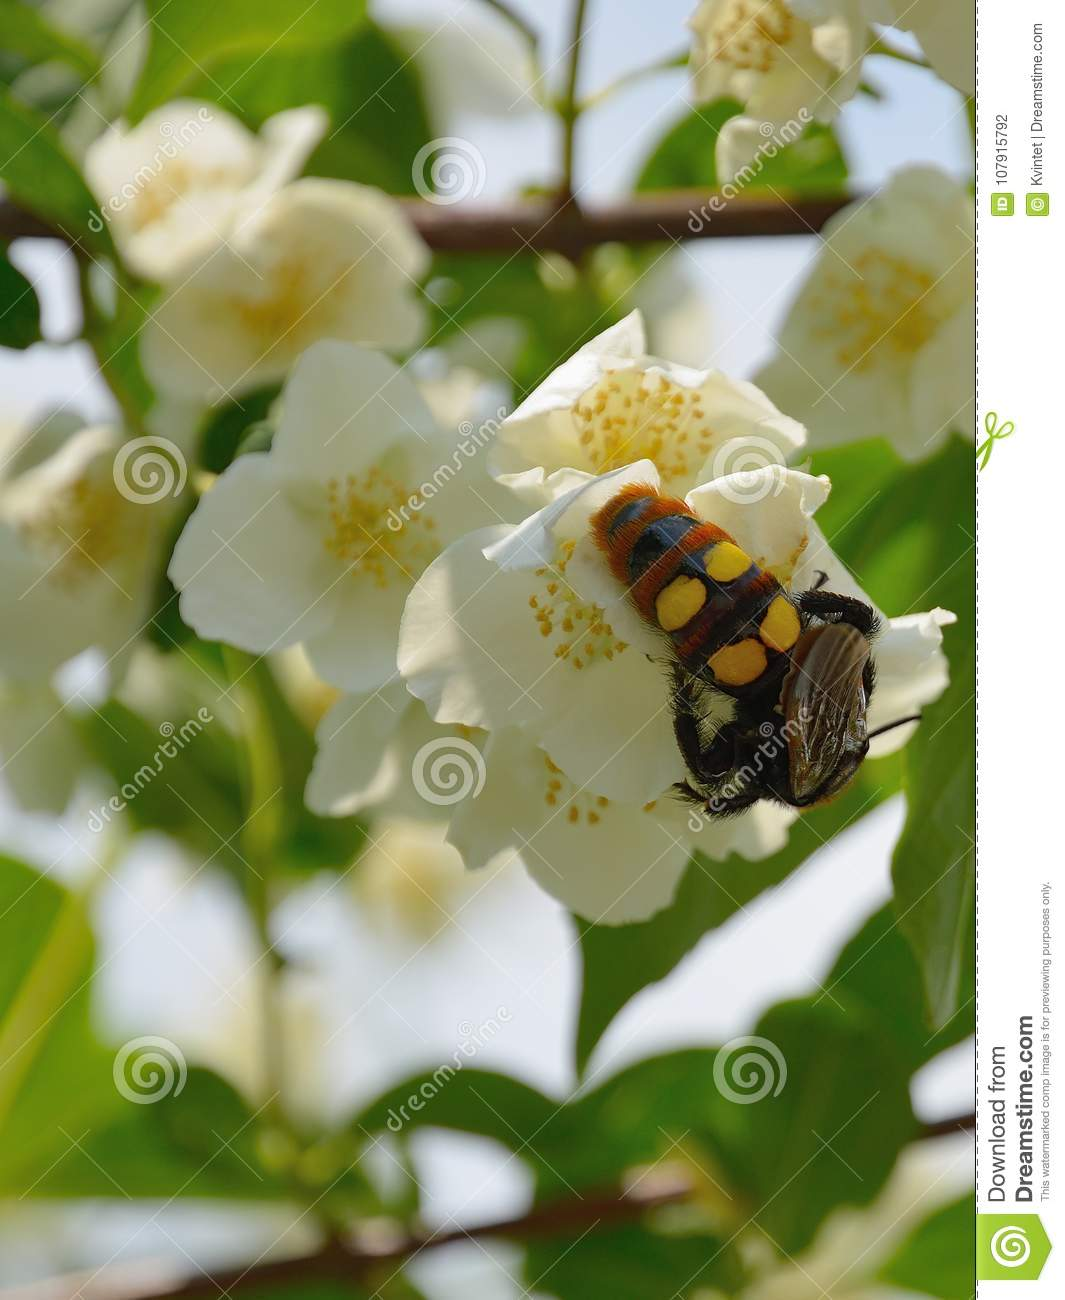 Summer background of jasmine flowers with insect hornet stock photo download summer background of jasmine flowers with insect hornet stock photo image of against izmirmasajfo